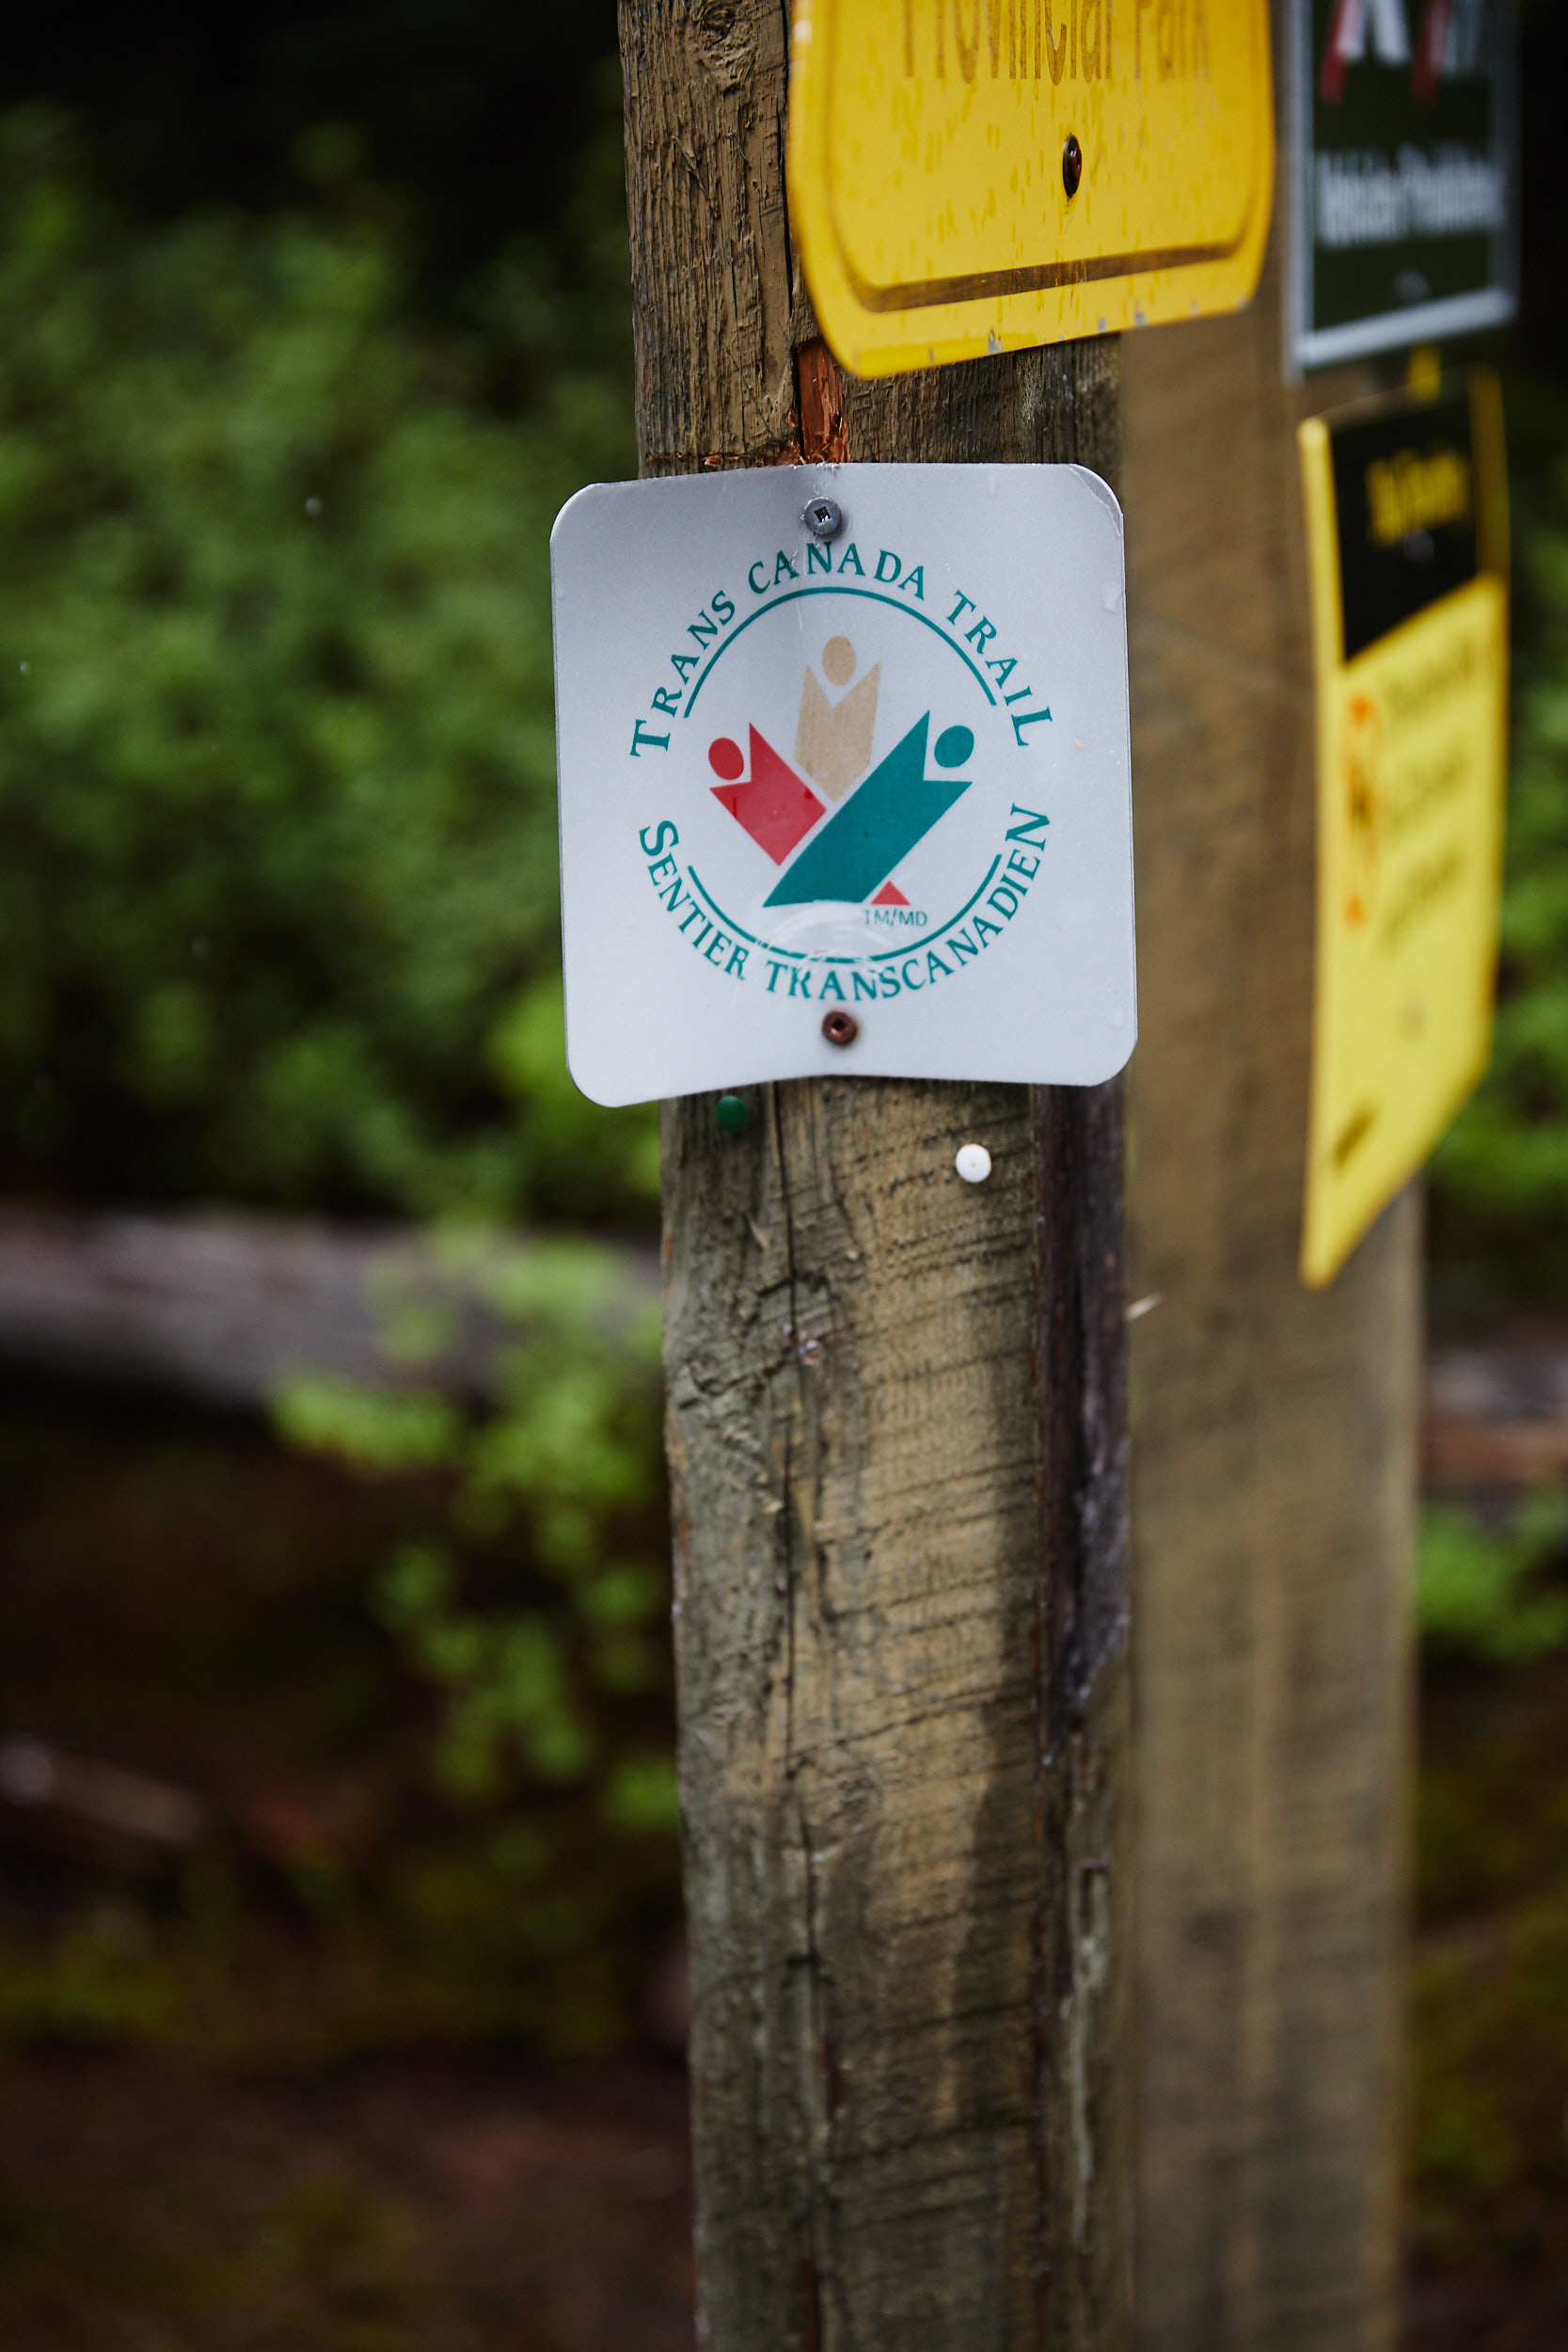 Our first Trans Canada Trail marker!